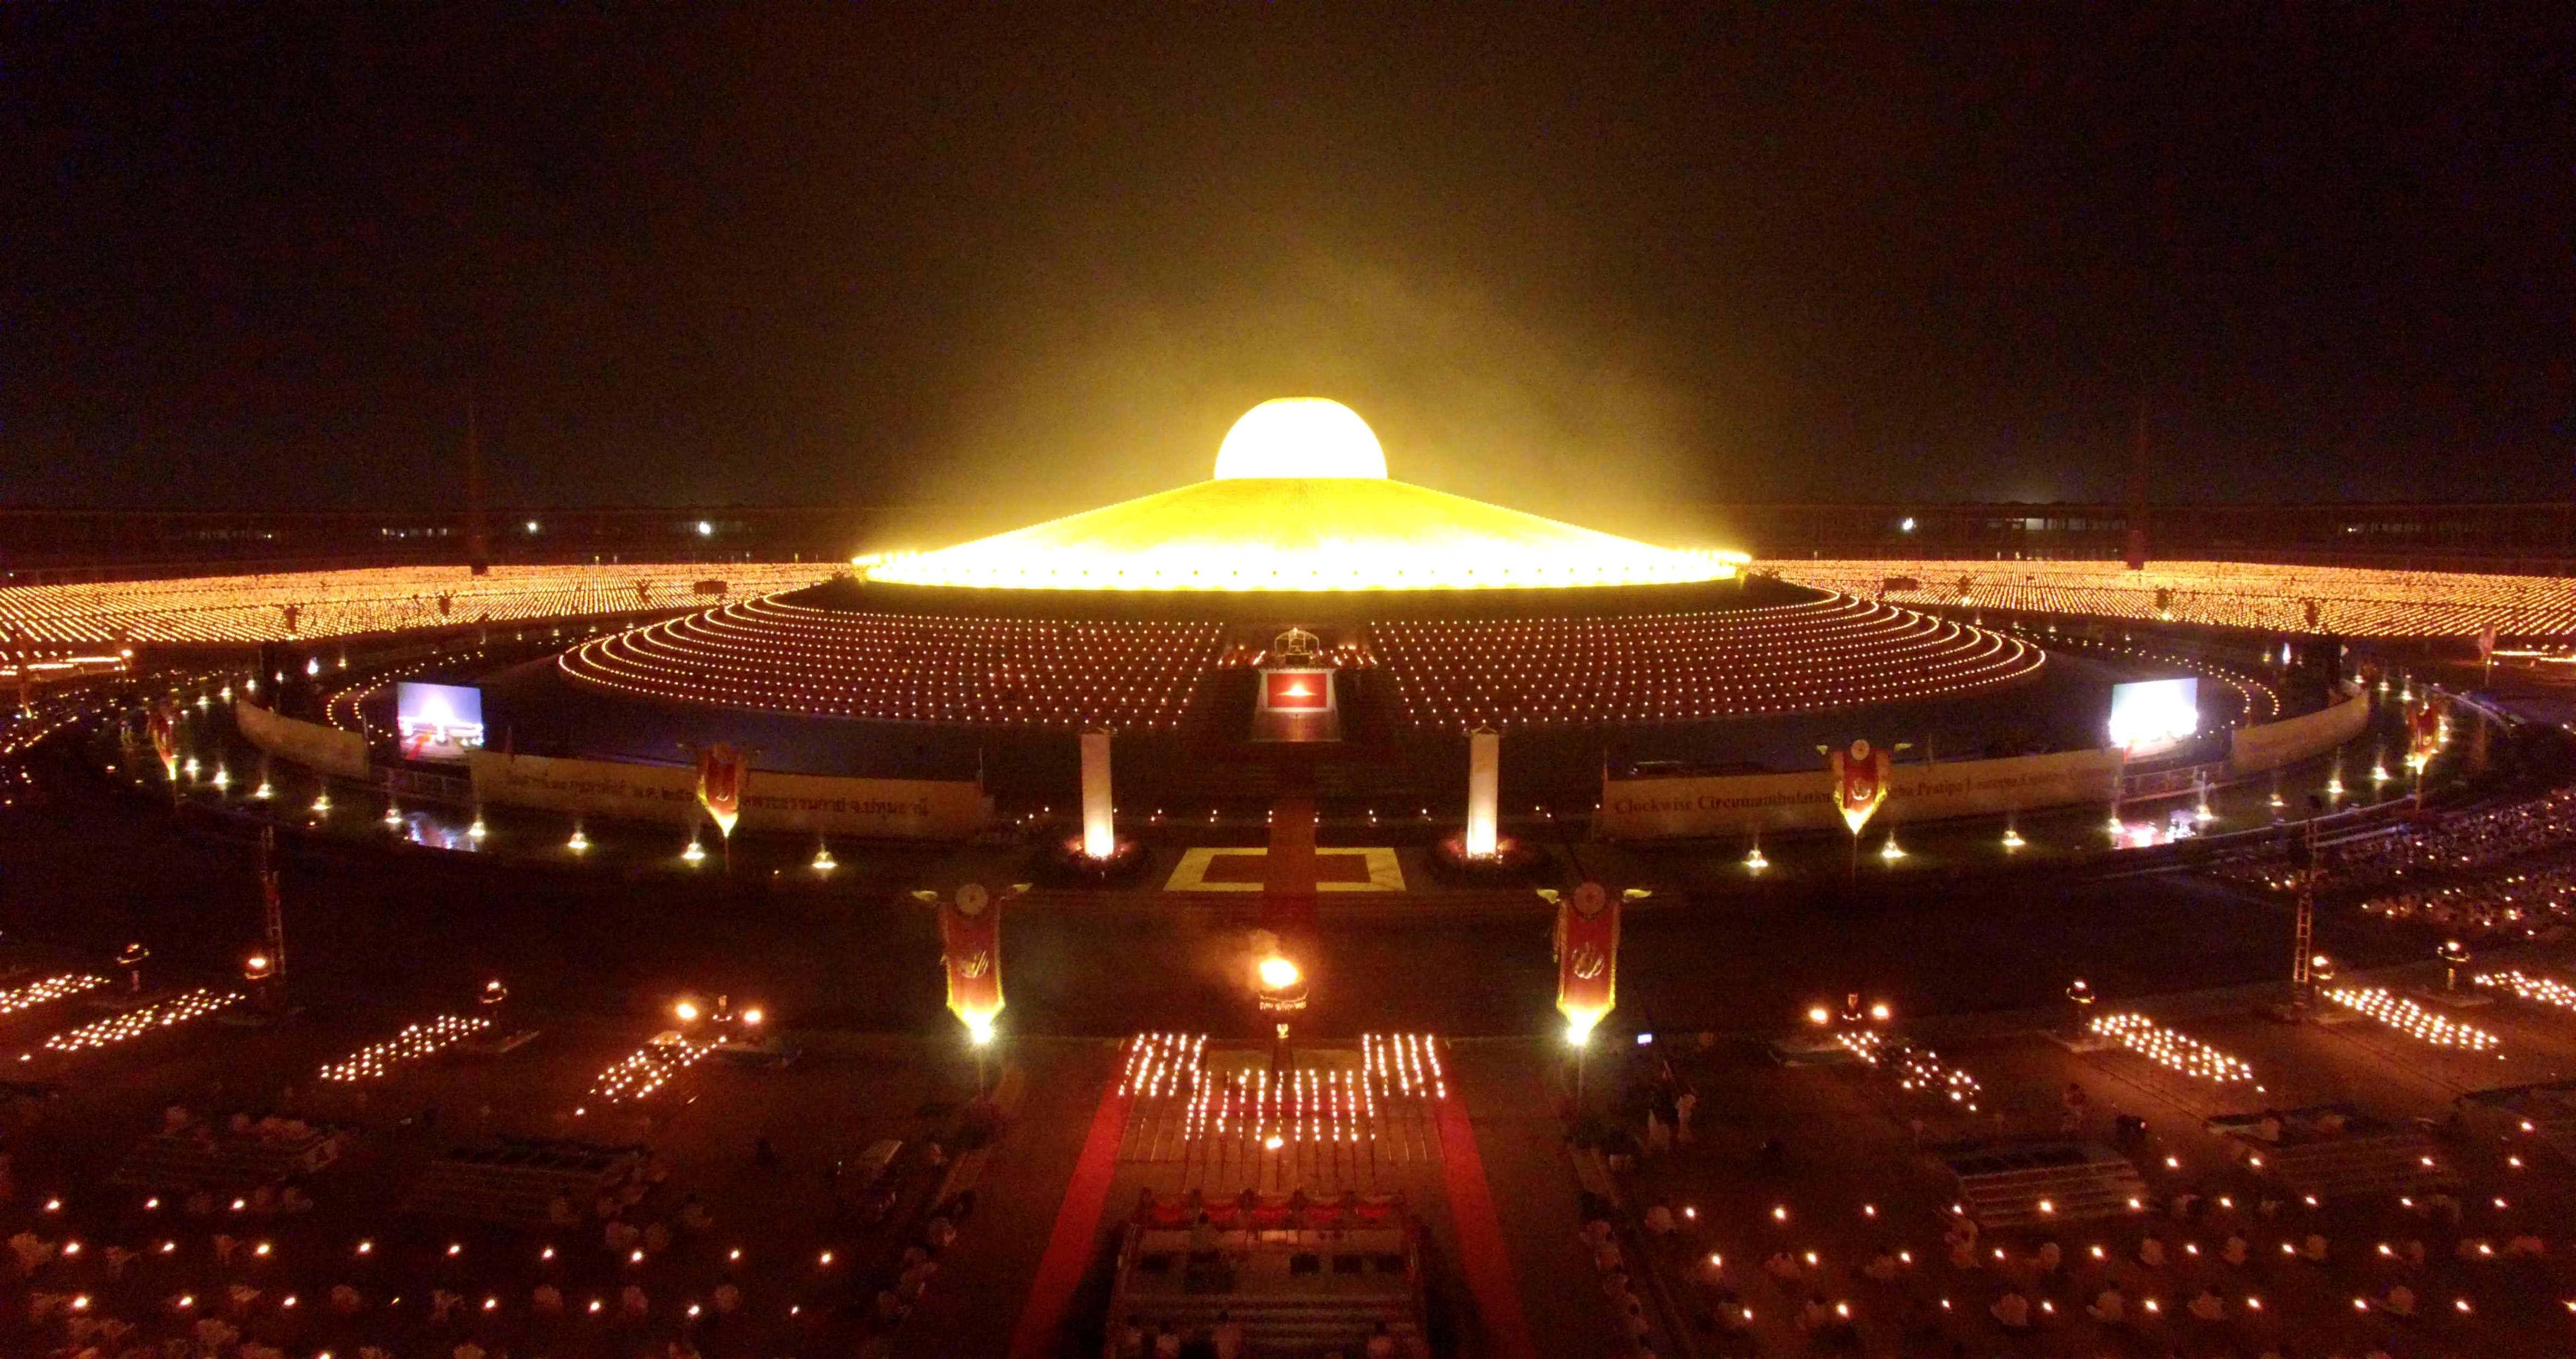 Slide 51 of 73: CAPTION: WAT DHAMAKAYA, BANGKOK, THAILAND - 2017/02/12: Image taken from a drone of thousands of Buddhist devotees and monks taking part in evening prayers by candlelight to mark Makha Bucha Day at Wat Dhammakaya temple, just north of Bangkok. Makha Bucha Day is held in celebration of the teachings of the Lord Buddha. (Photo by Stephen J. Boitano/LightRocket via Getty Images)